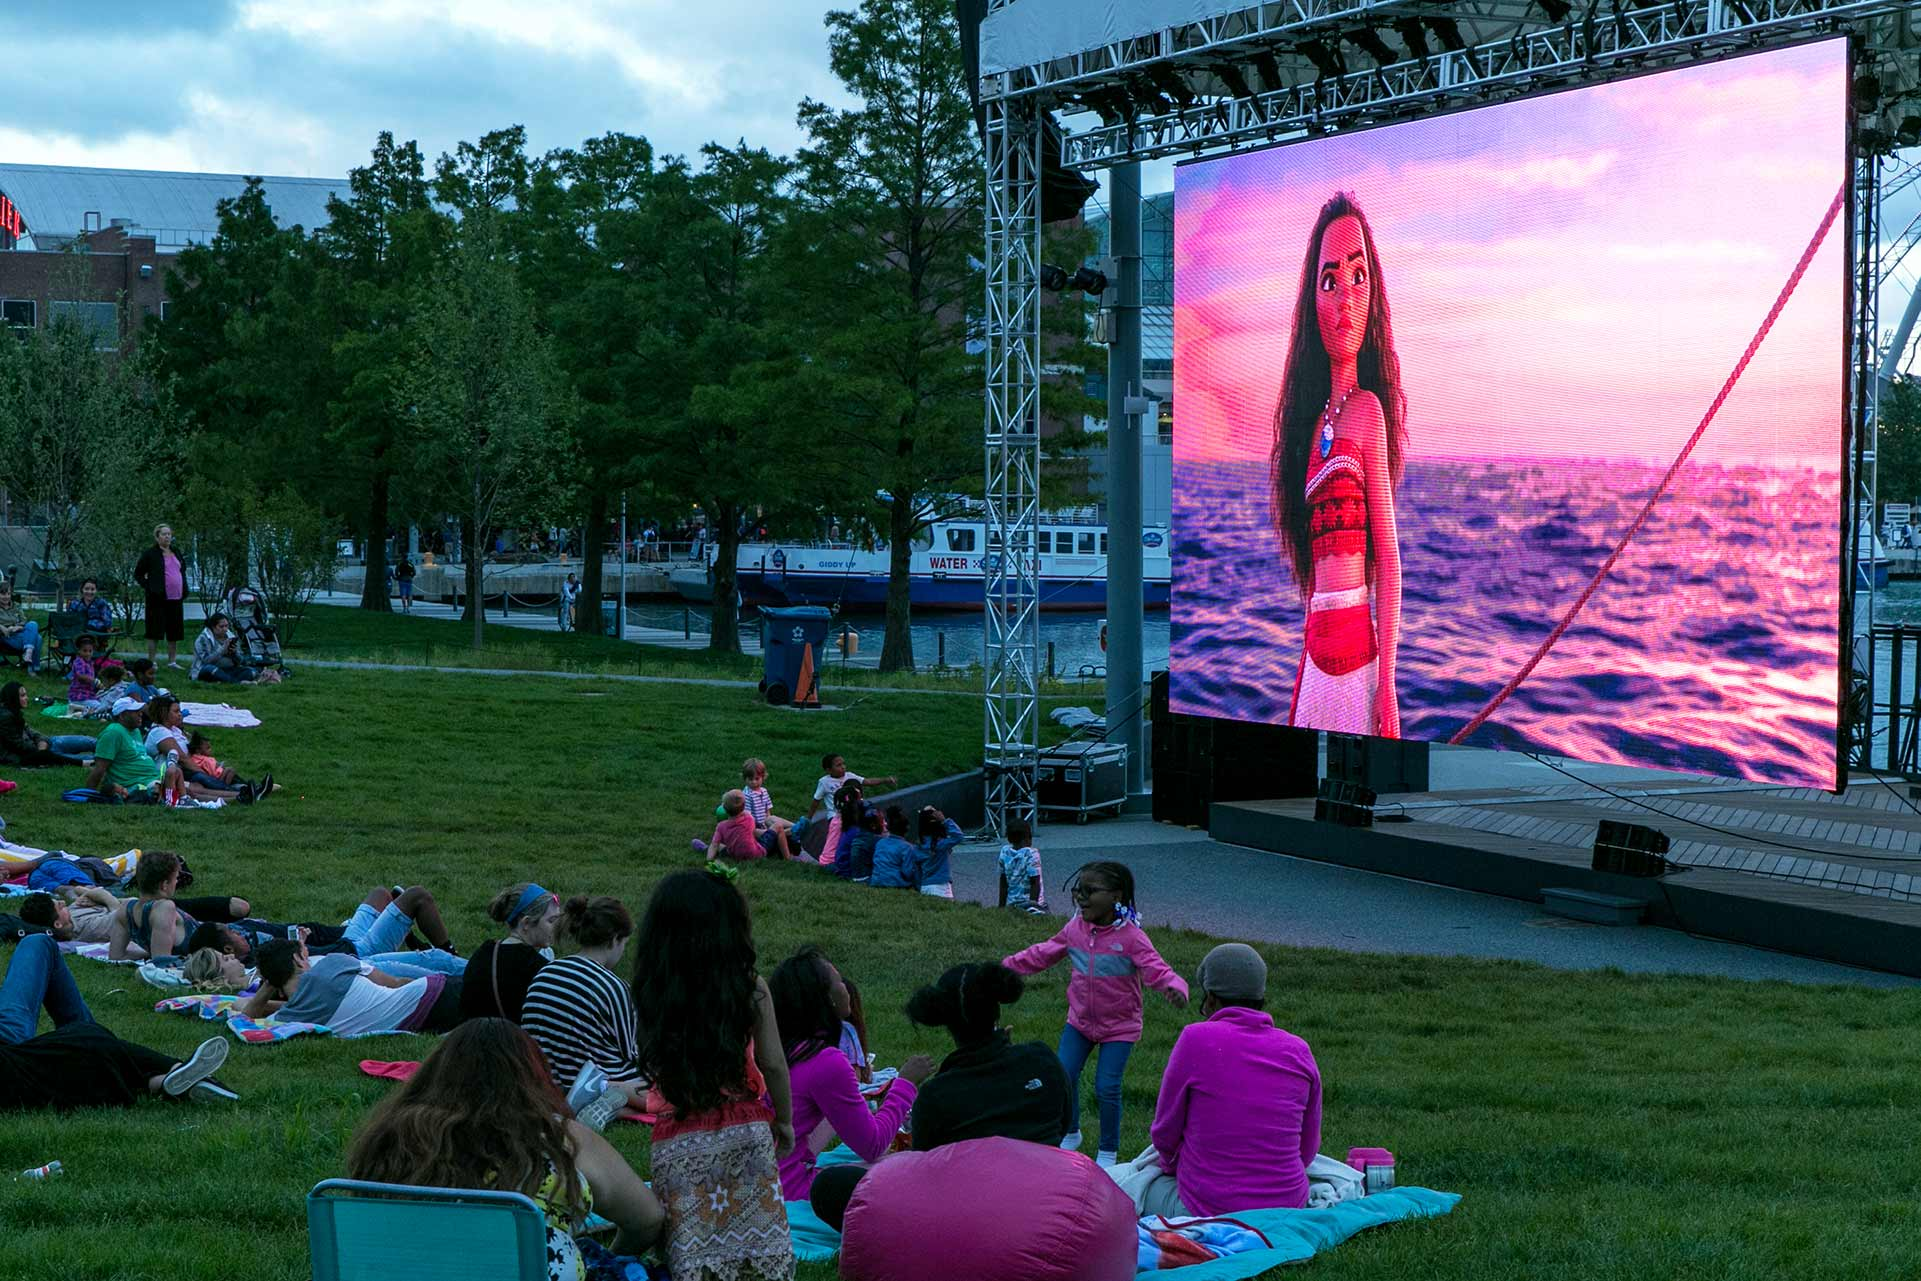 Absen C7 LED Wall at the Polk Bros Park Performance Lawns